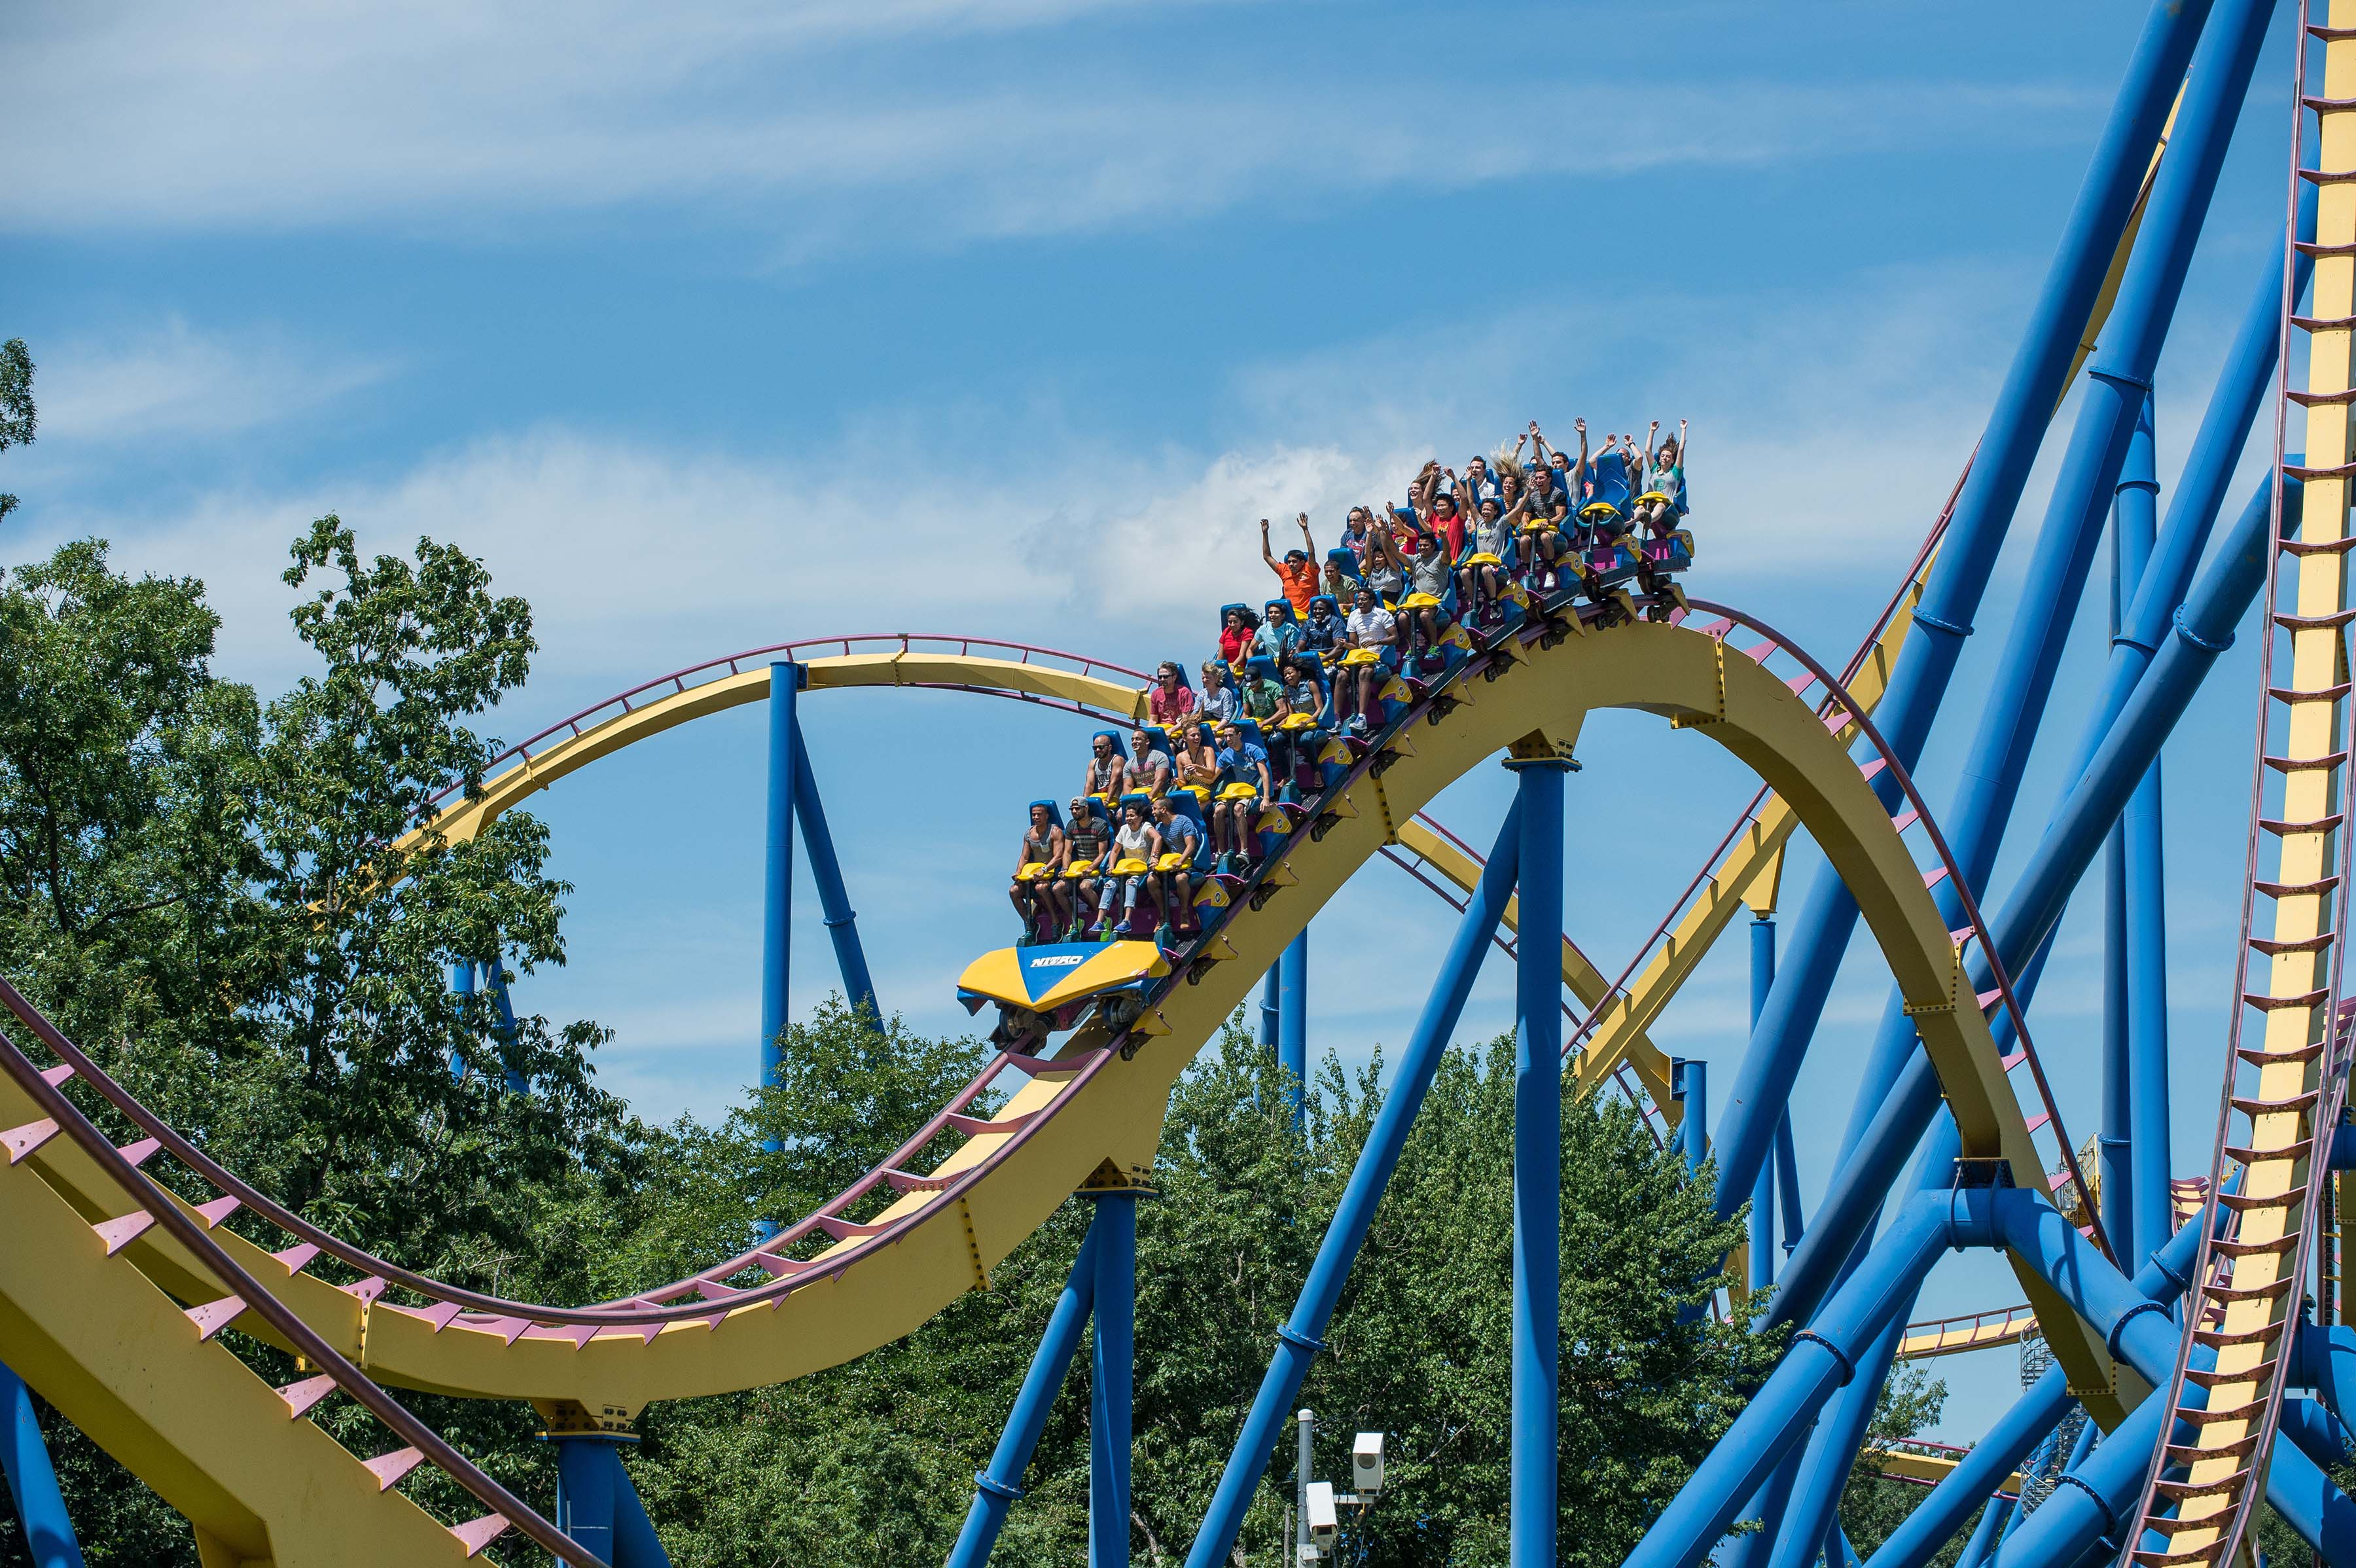 Six Flags Polar Coaster Challenge: What you need to know